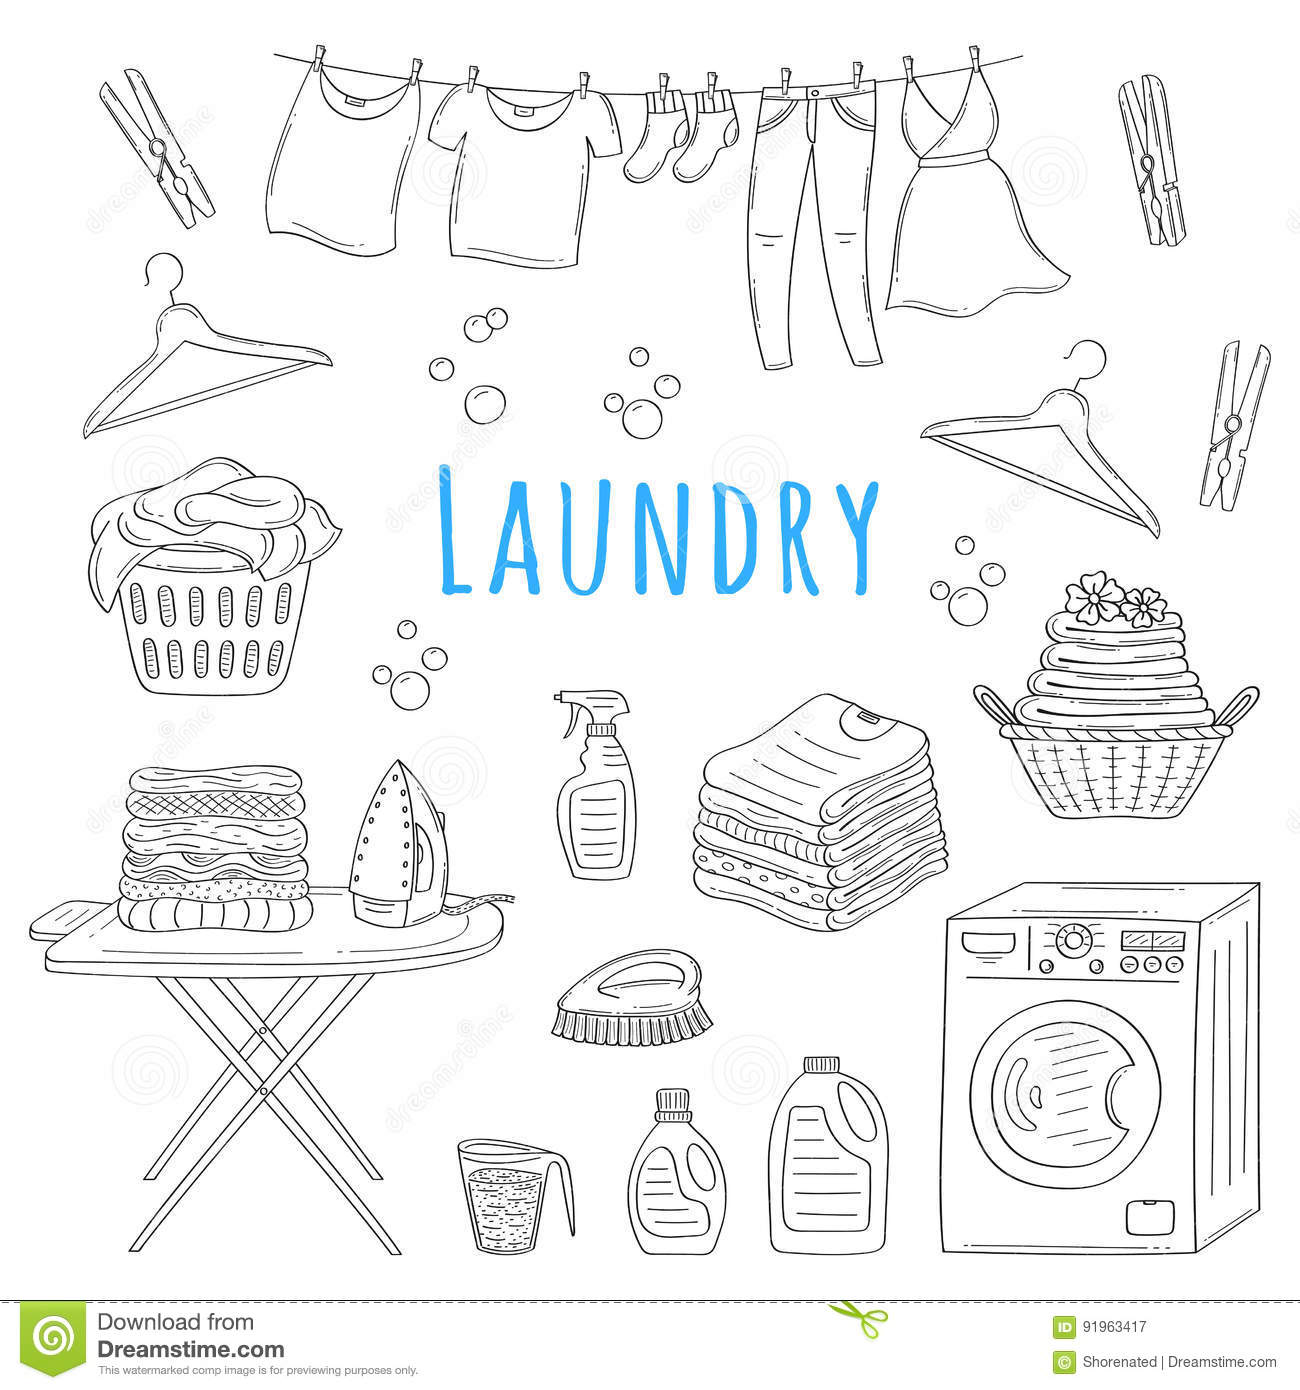 Laundry Service Hand Drawn Doodle Icons Set Vector Illustration